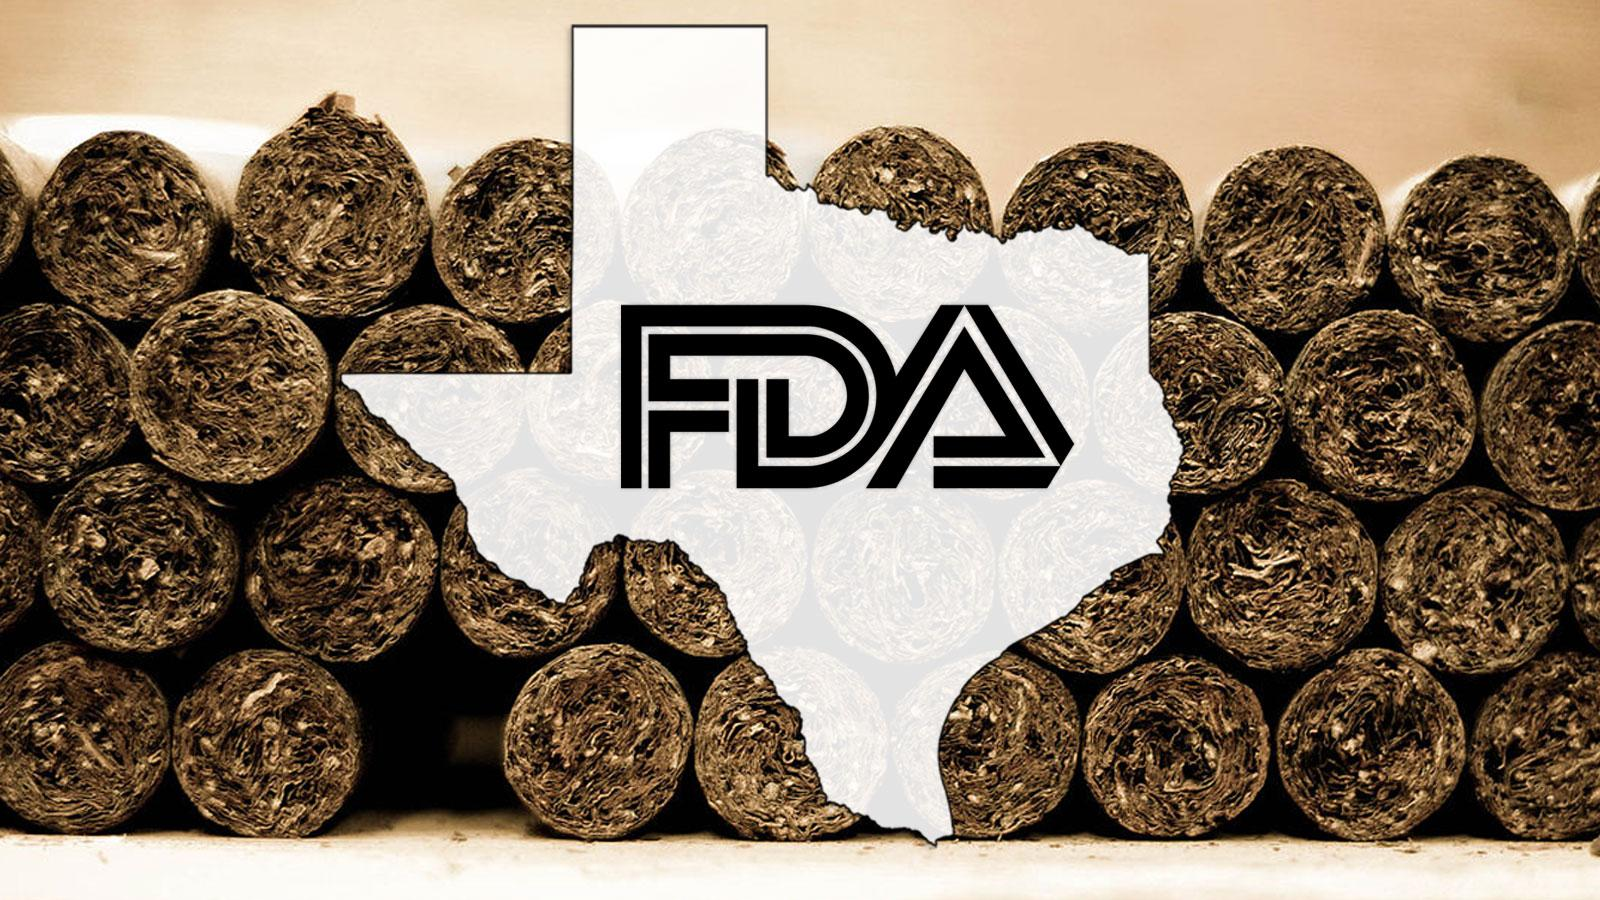 Texas Cigar Industry Files For Relief From FDA Warning Requirements